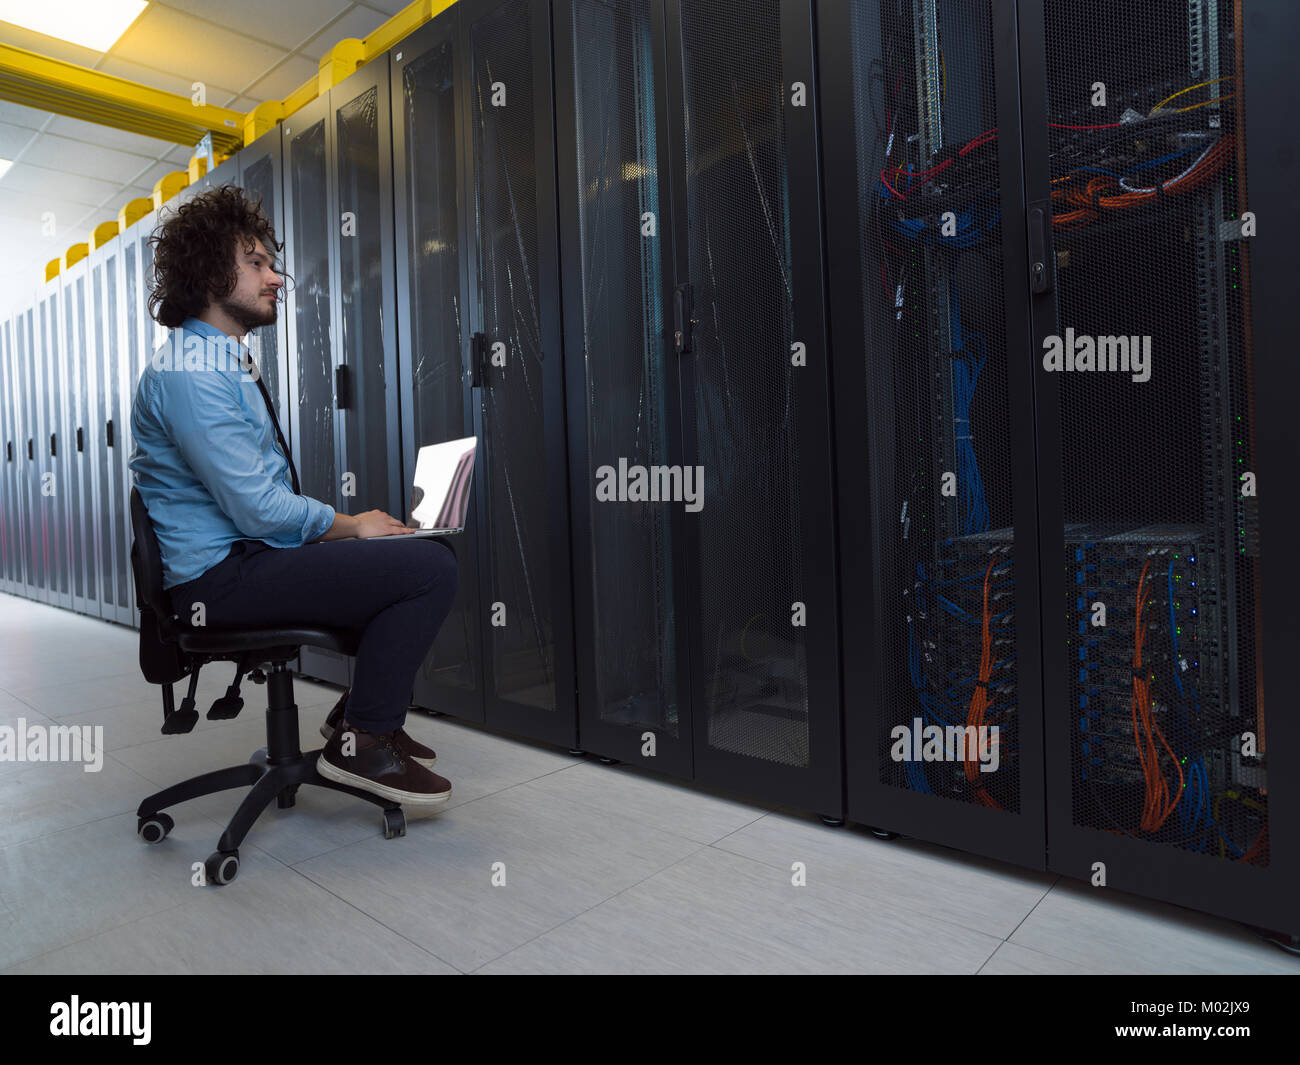 Male IT engineer working on a laptop in server room at